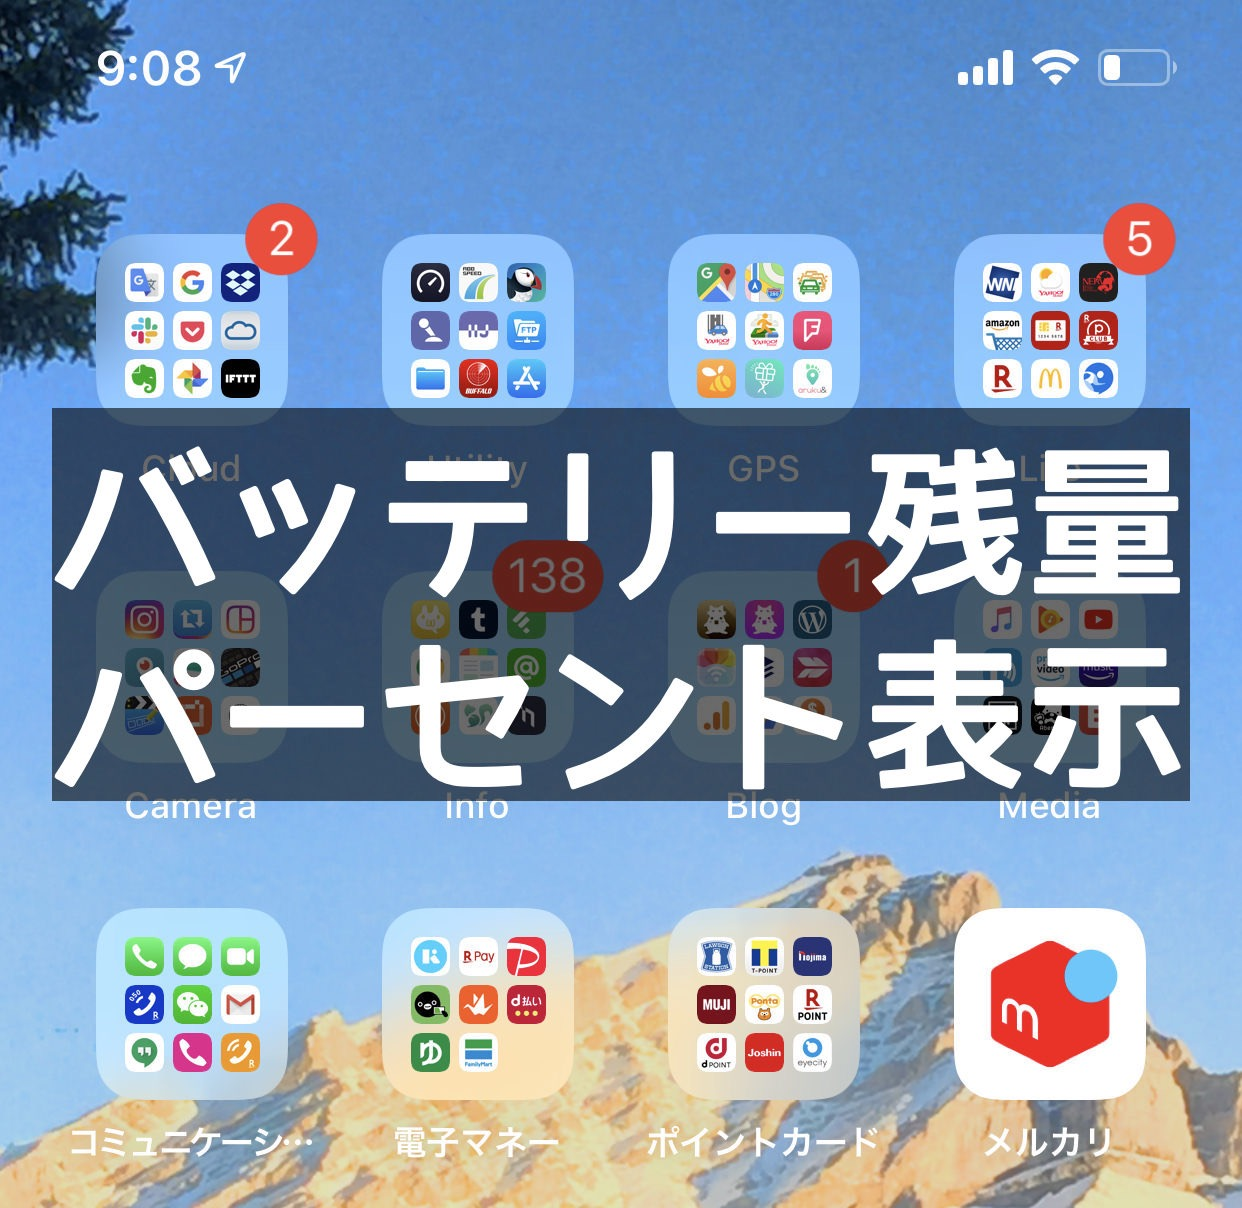 【iPhone】バッテリー残量をパーセント(%)で表示する方法【X/XS/XR/11/11 Pro】